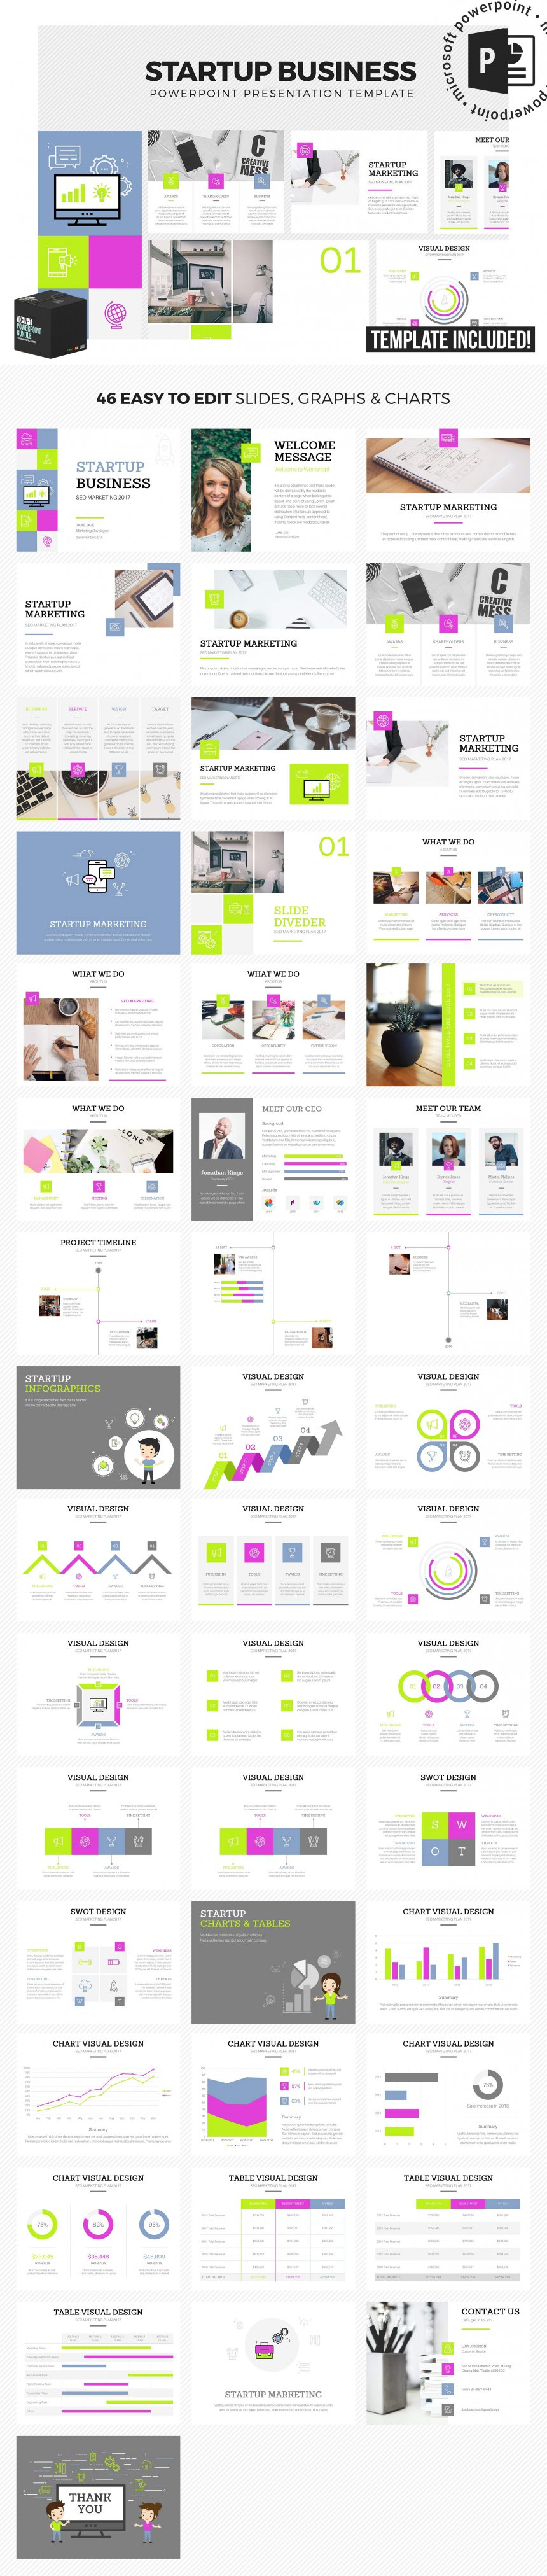 10 creative and professional powerpoint templates plus bonuses startup business powerpoint template toneelgroepblik Image collections